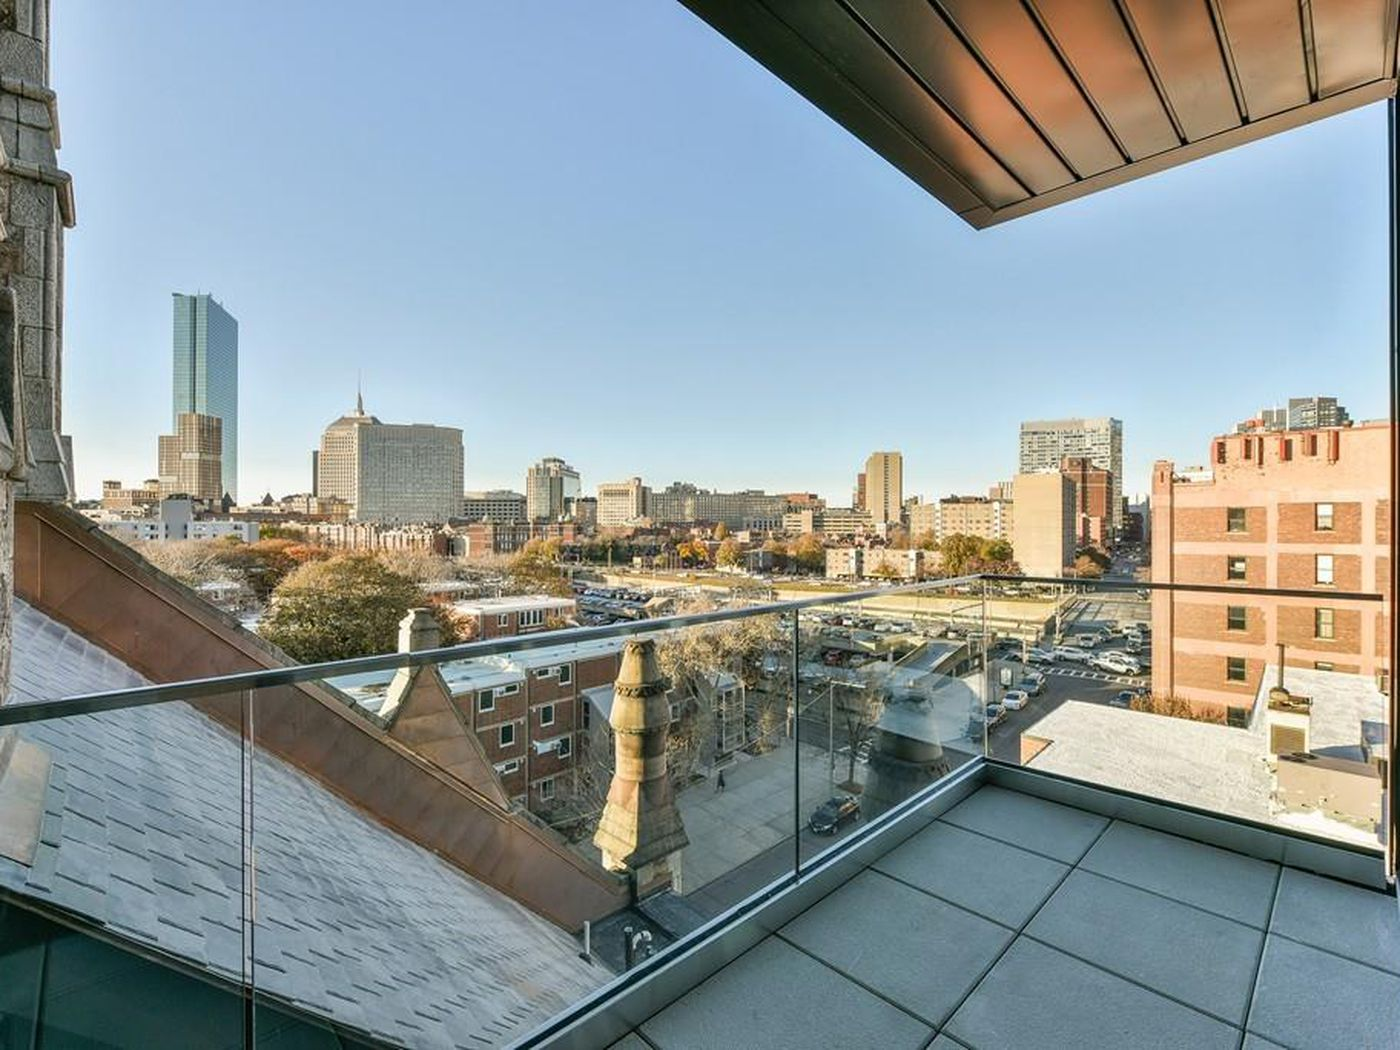 South End's Lucas offers 'tower home' with two decks for $3.5M - Curbed  Boston